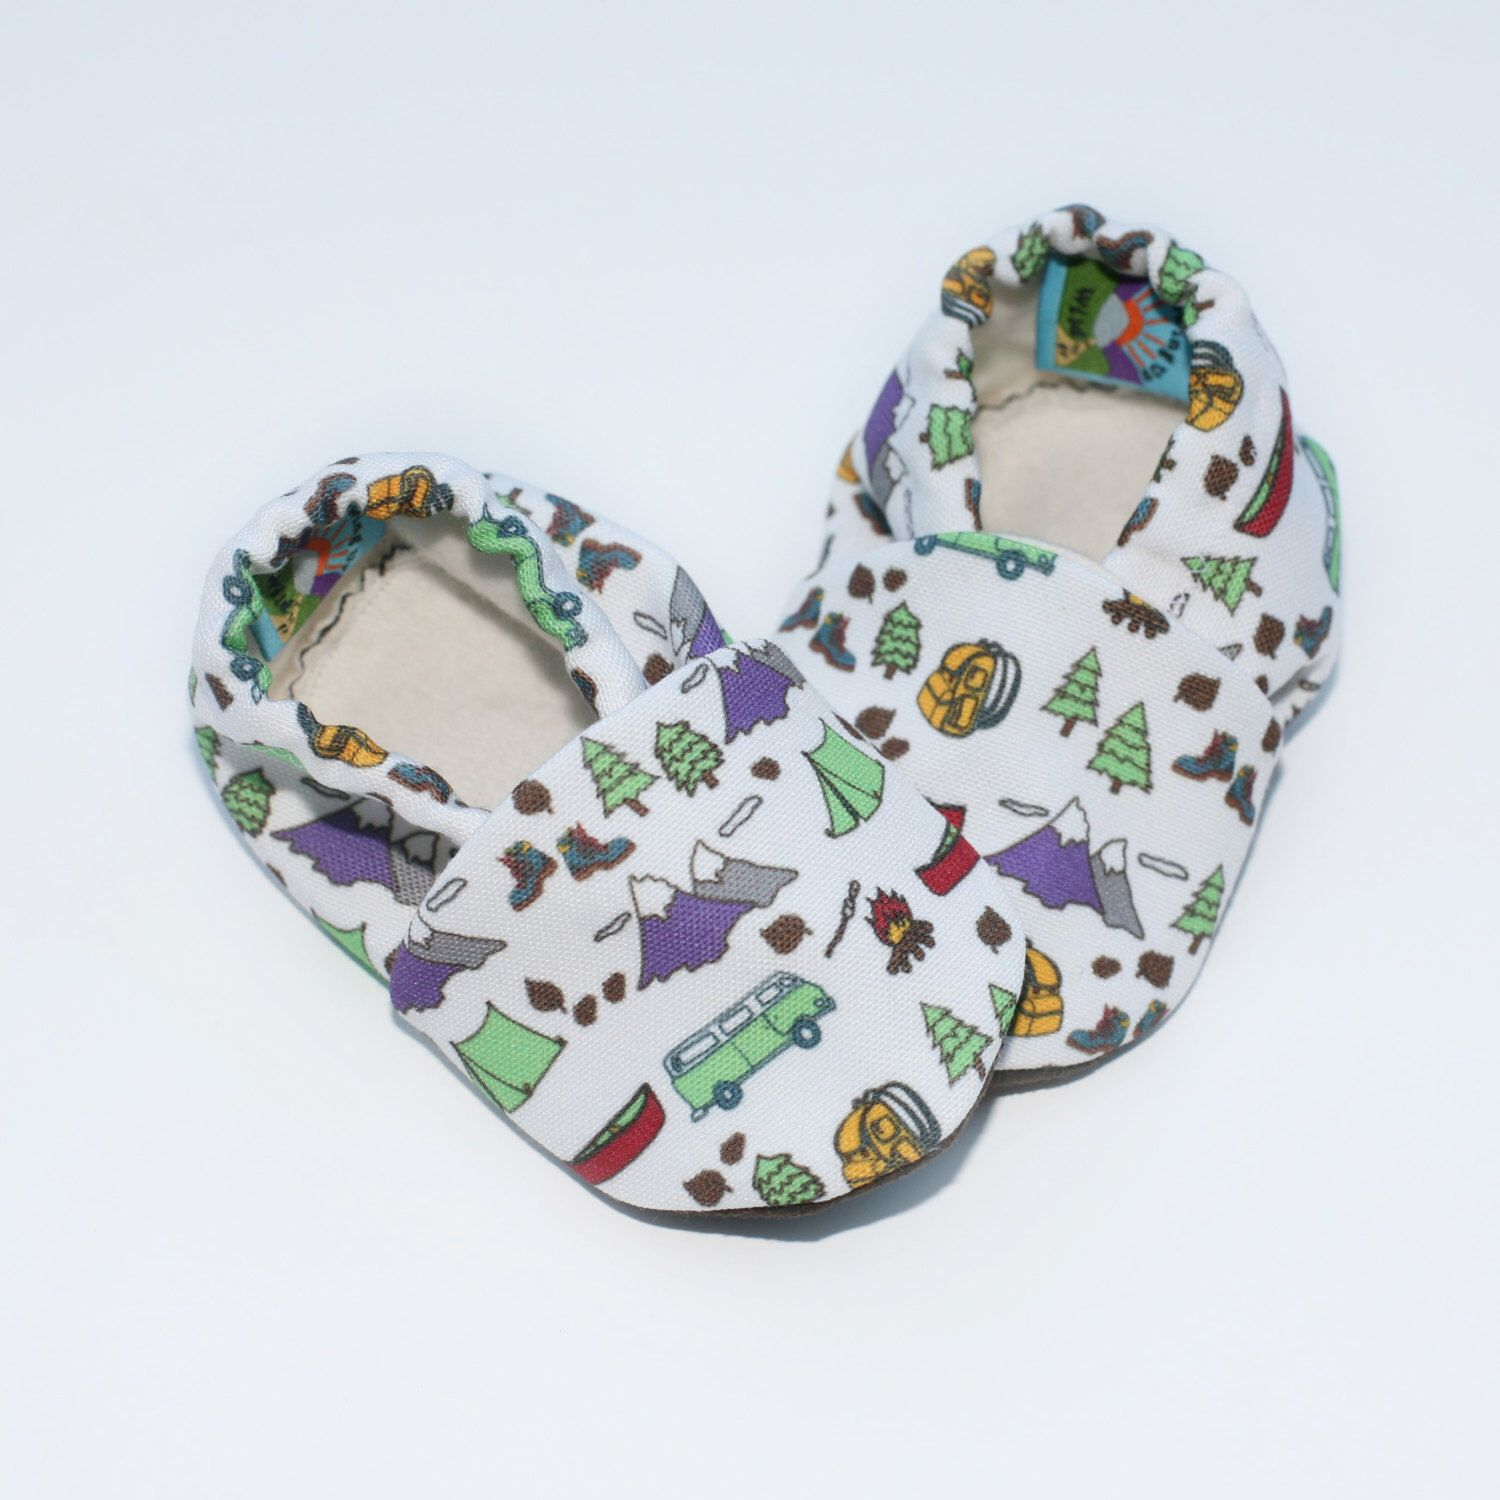 Baby Shoes. Happy Camper Baby Booties. Eco Canvas with Organic Fleece Linings. Camping Theme Baby Shoes. Camp Baby Slippers by GrowingUpWild on Etsy https://www.etsy.com/listing/260829735/baby-shoes-happy-camper-baby-booties-eco